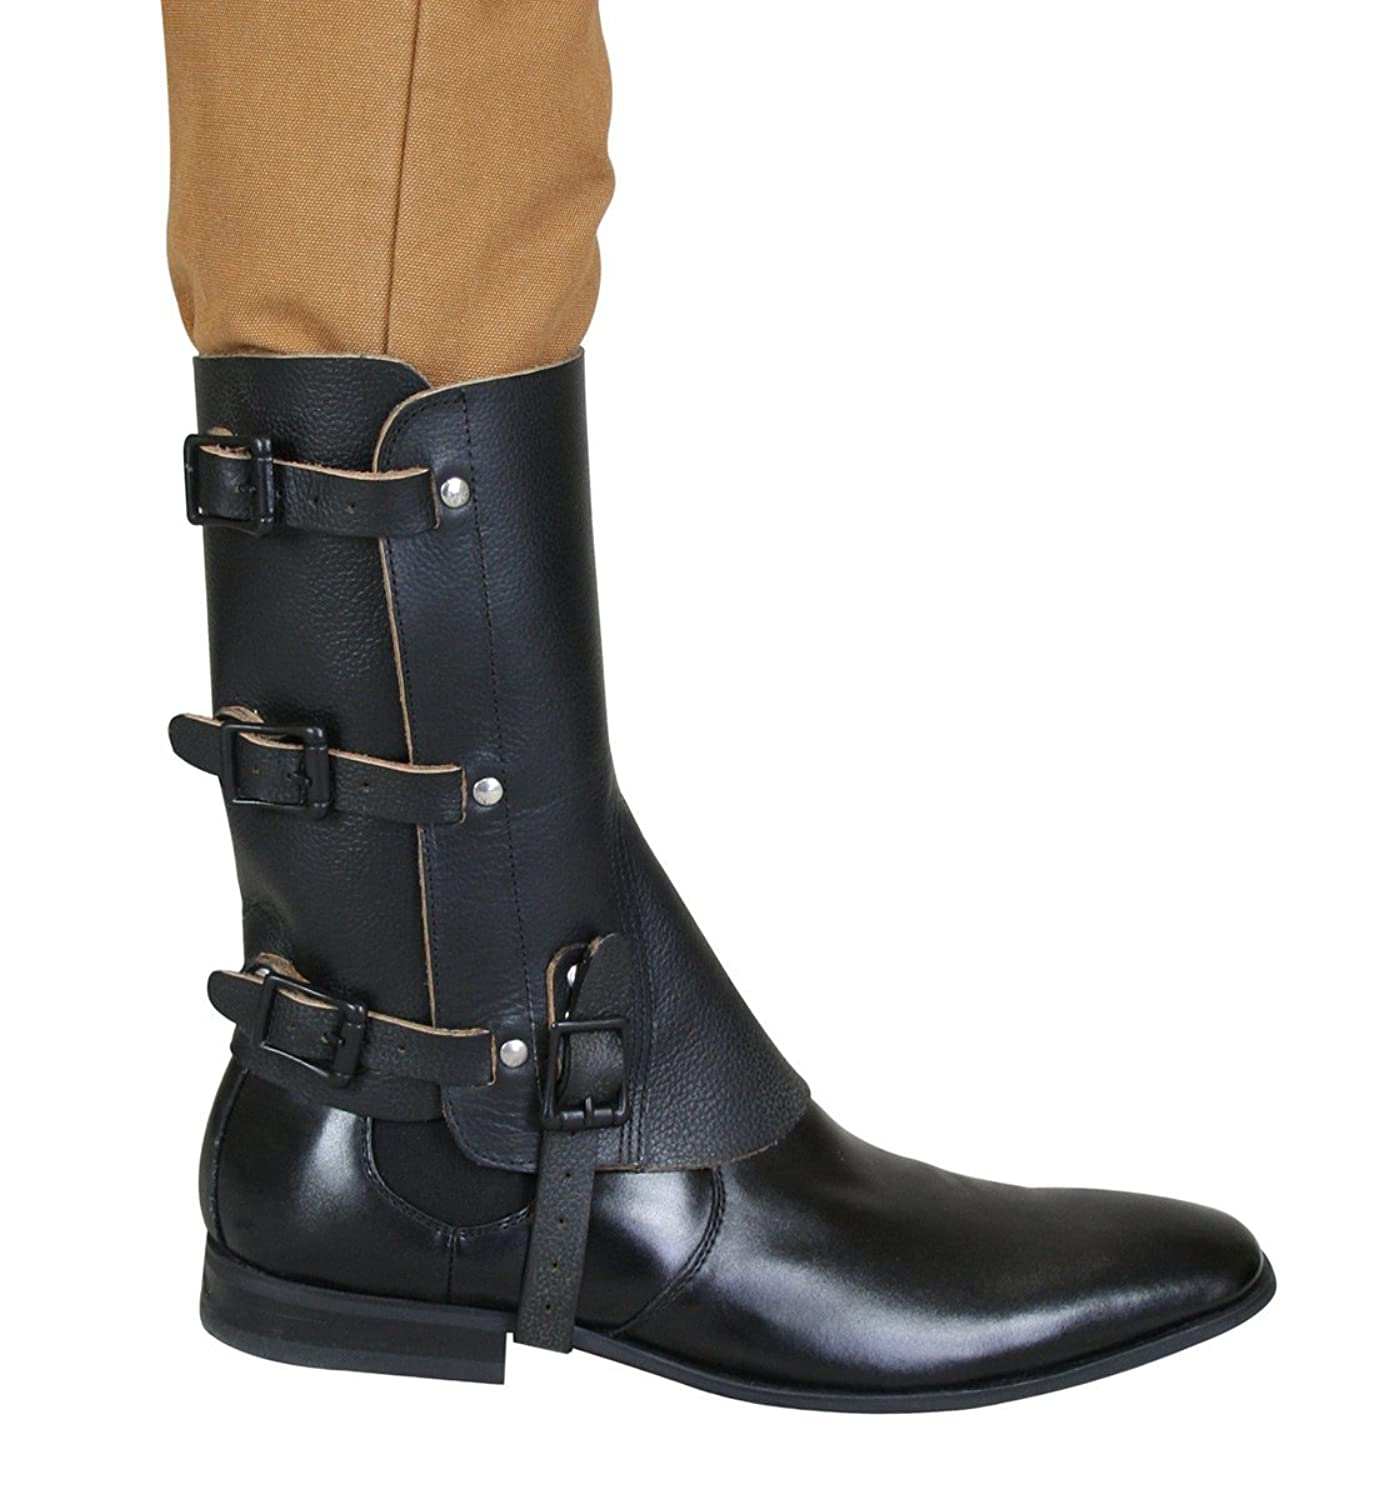 Vintage Boots- Buy Winter Retro Boots Historical Emporium Mens Deluxe Leather Military Gaiters $49.95 AT vintagedancer.com